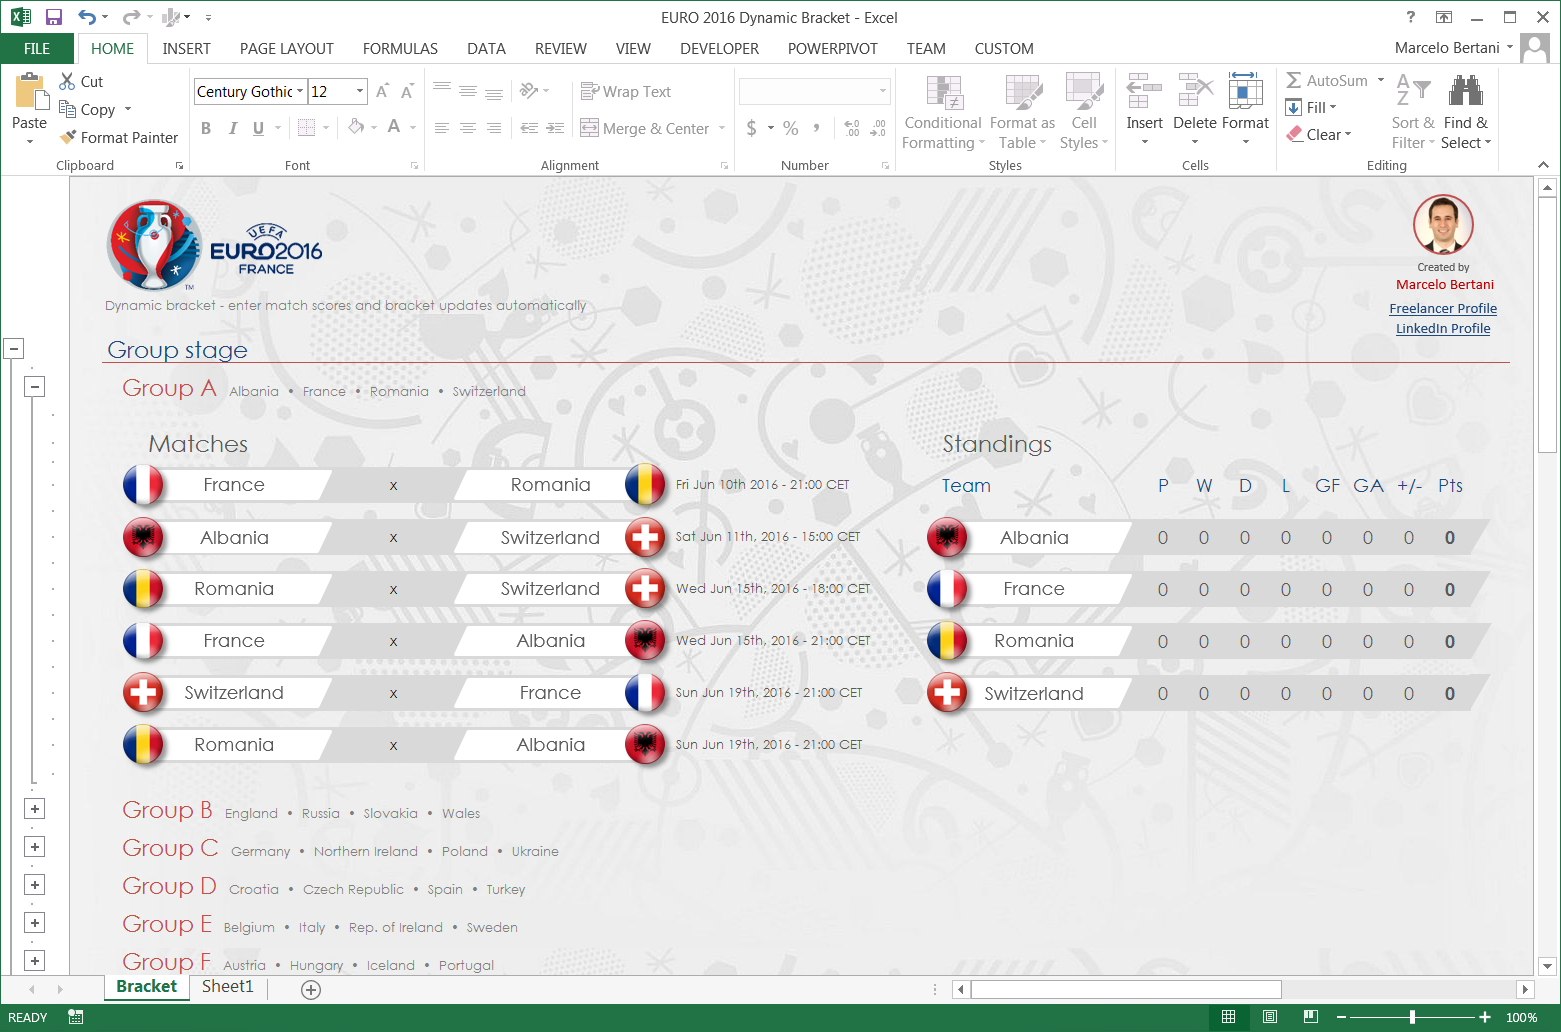 Euro 2016 Dynamic Bracket in Excel